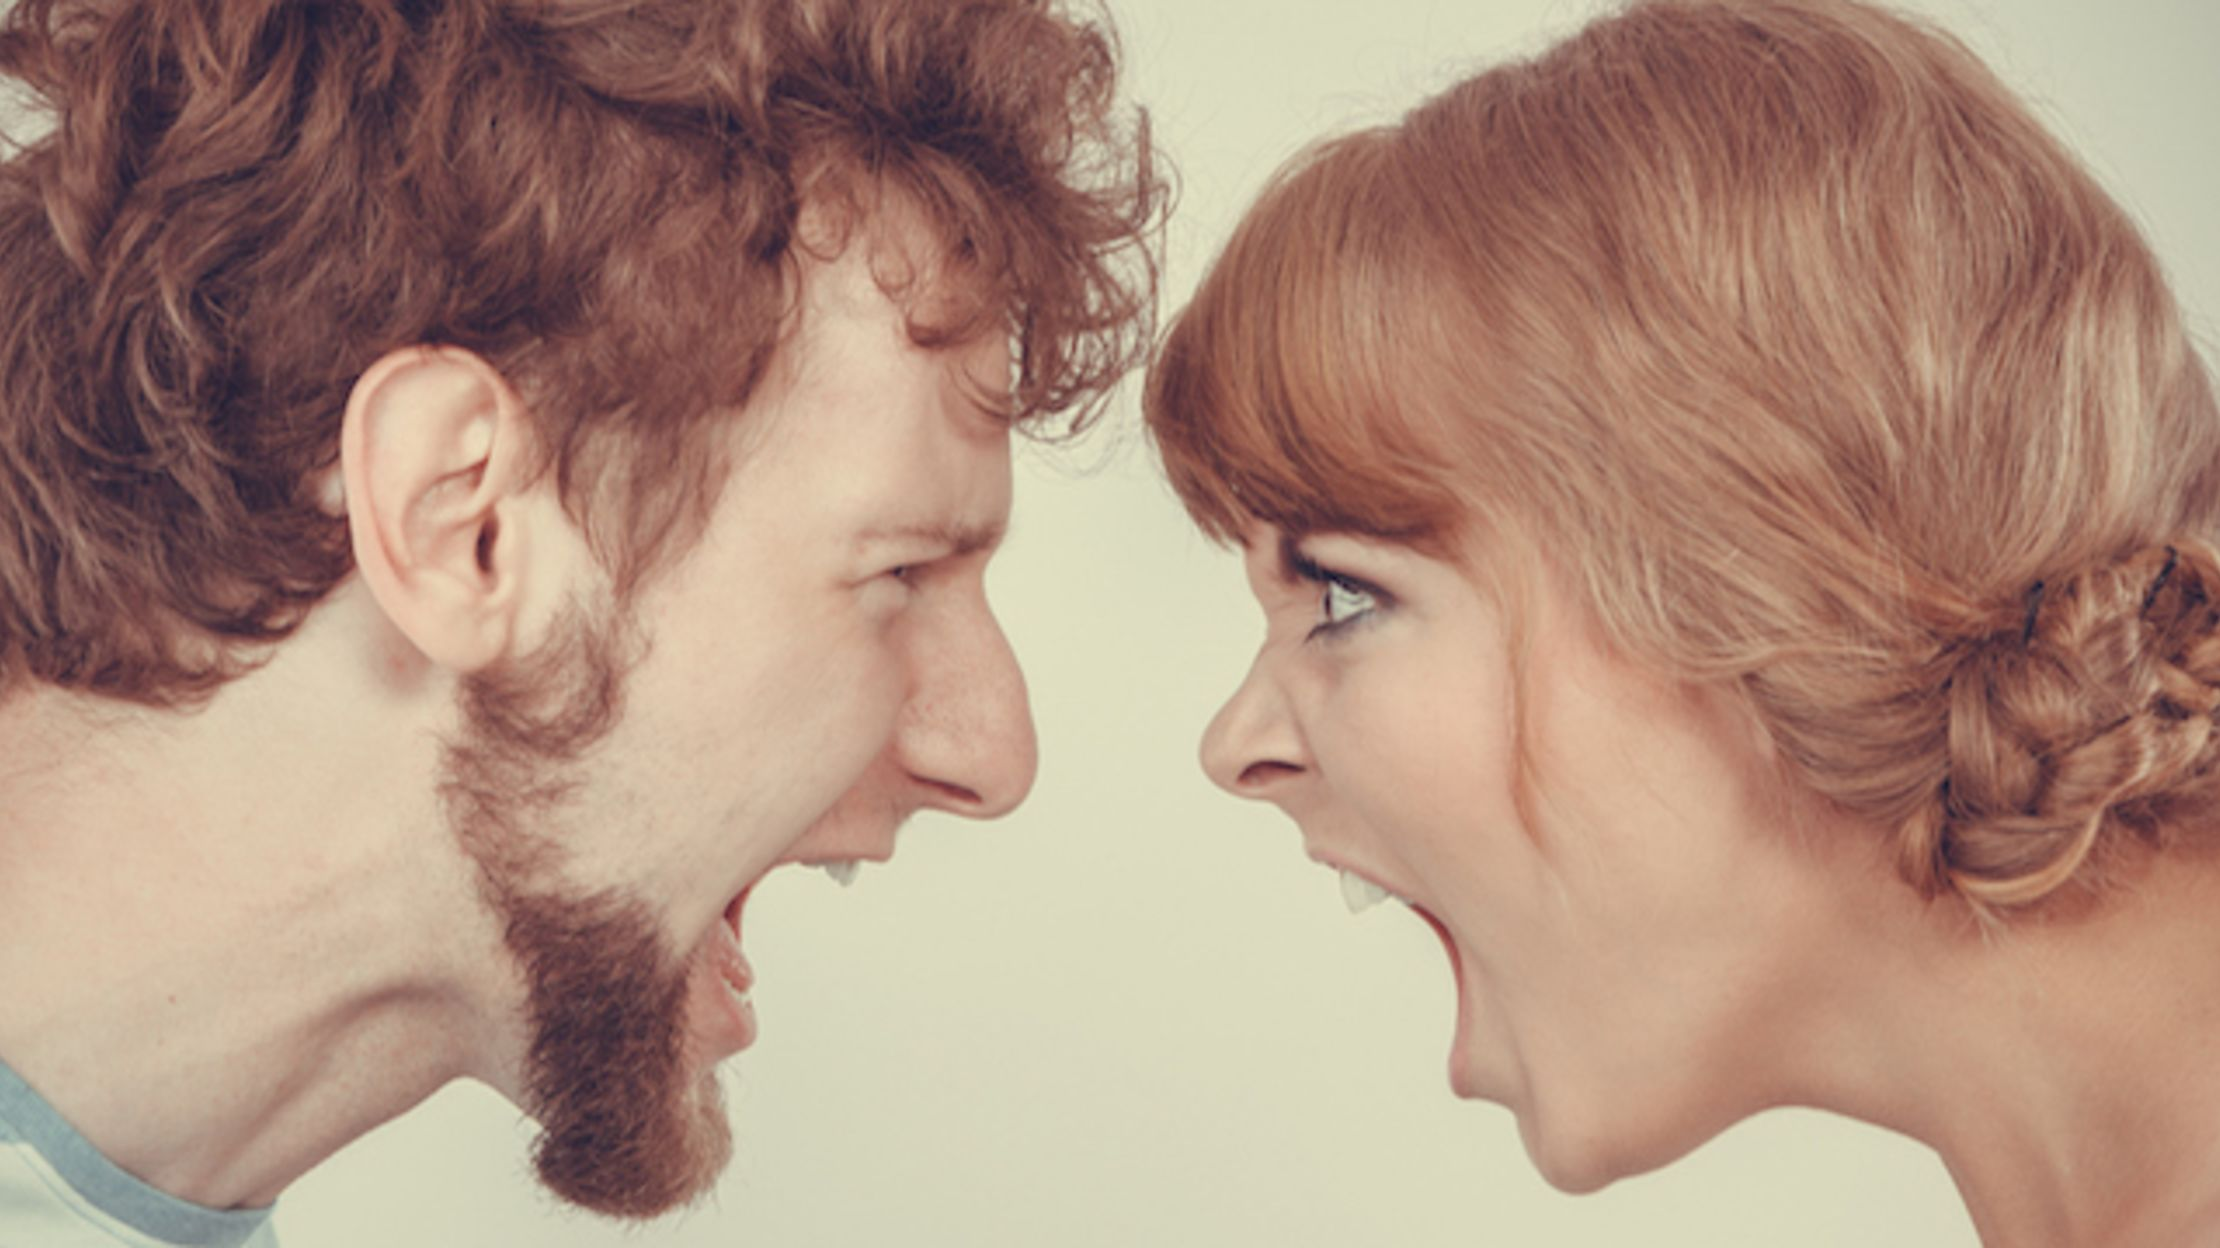 No Sh*t: People Who Swear More May Also Be More Honest, Study Says